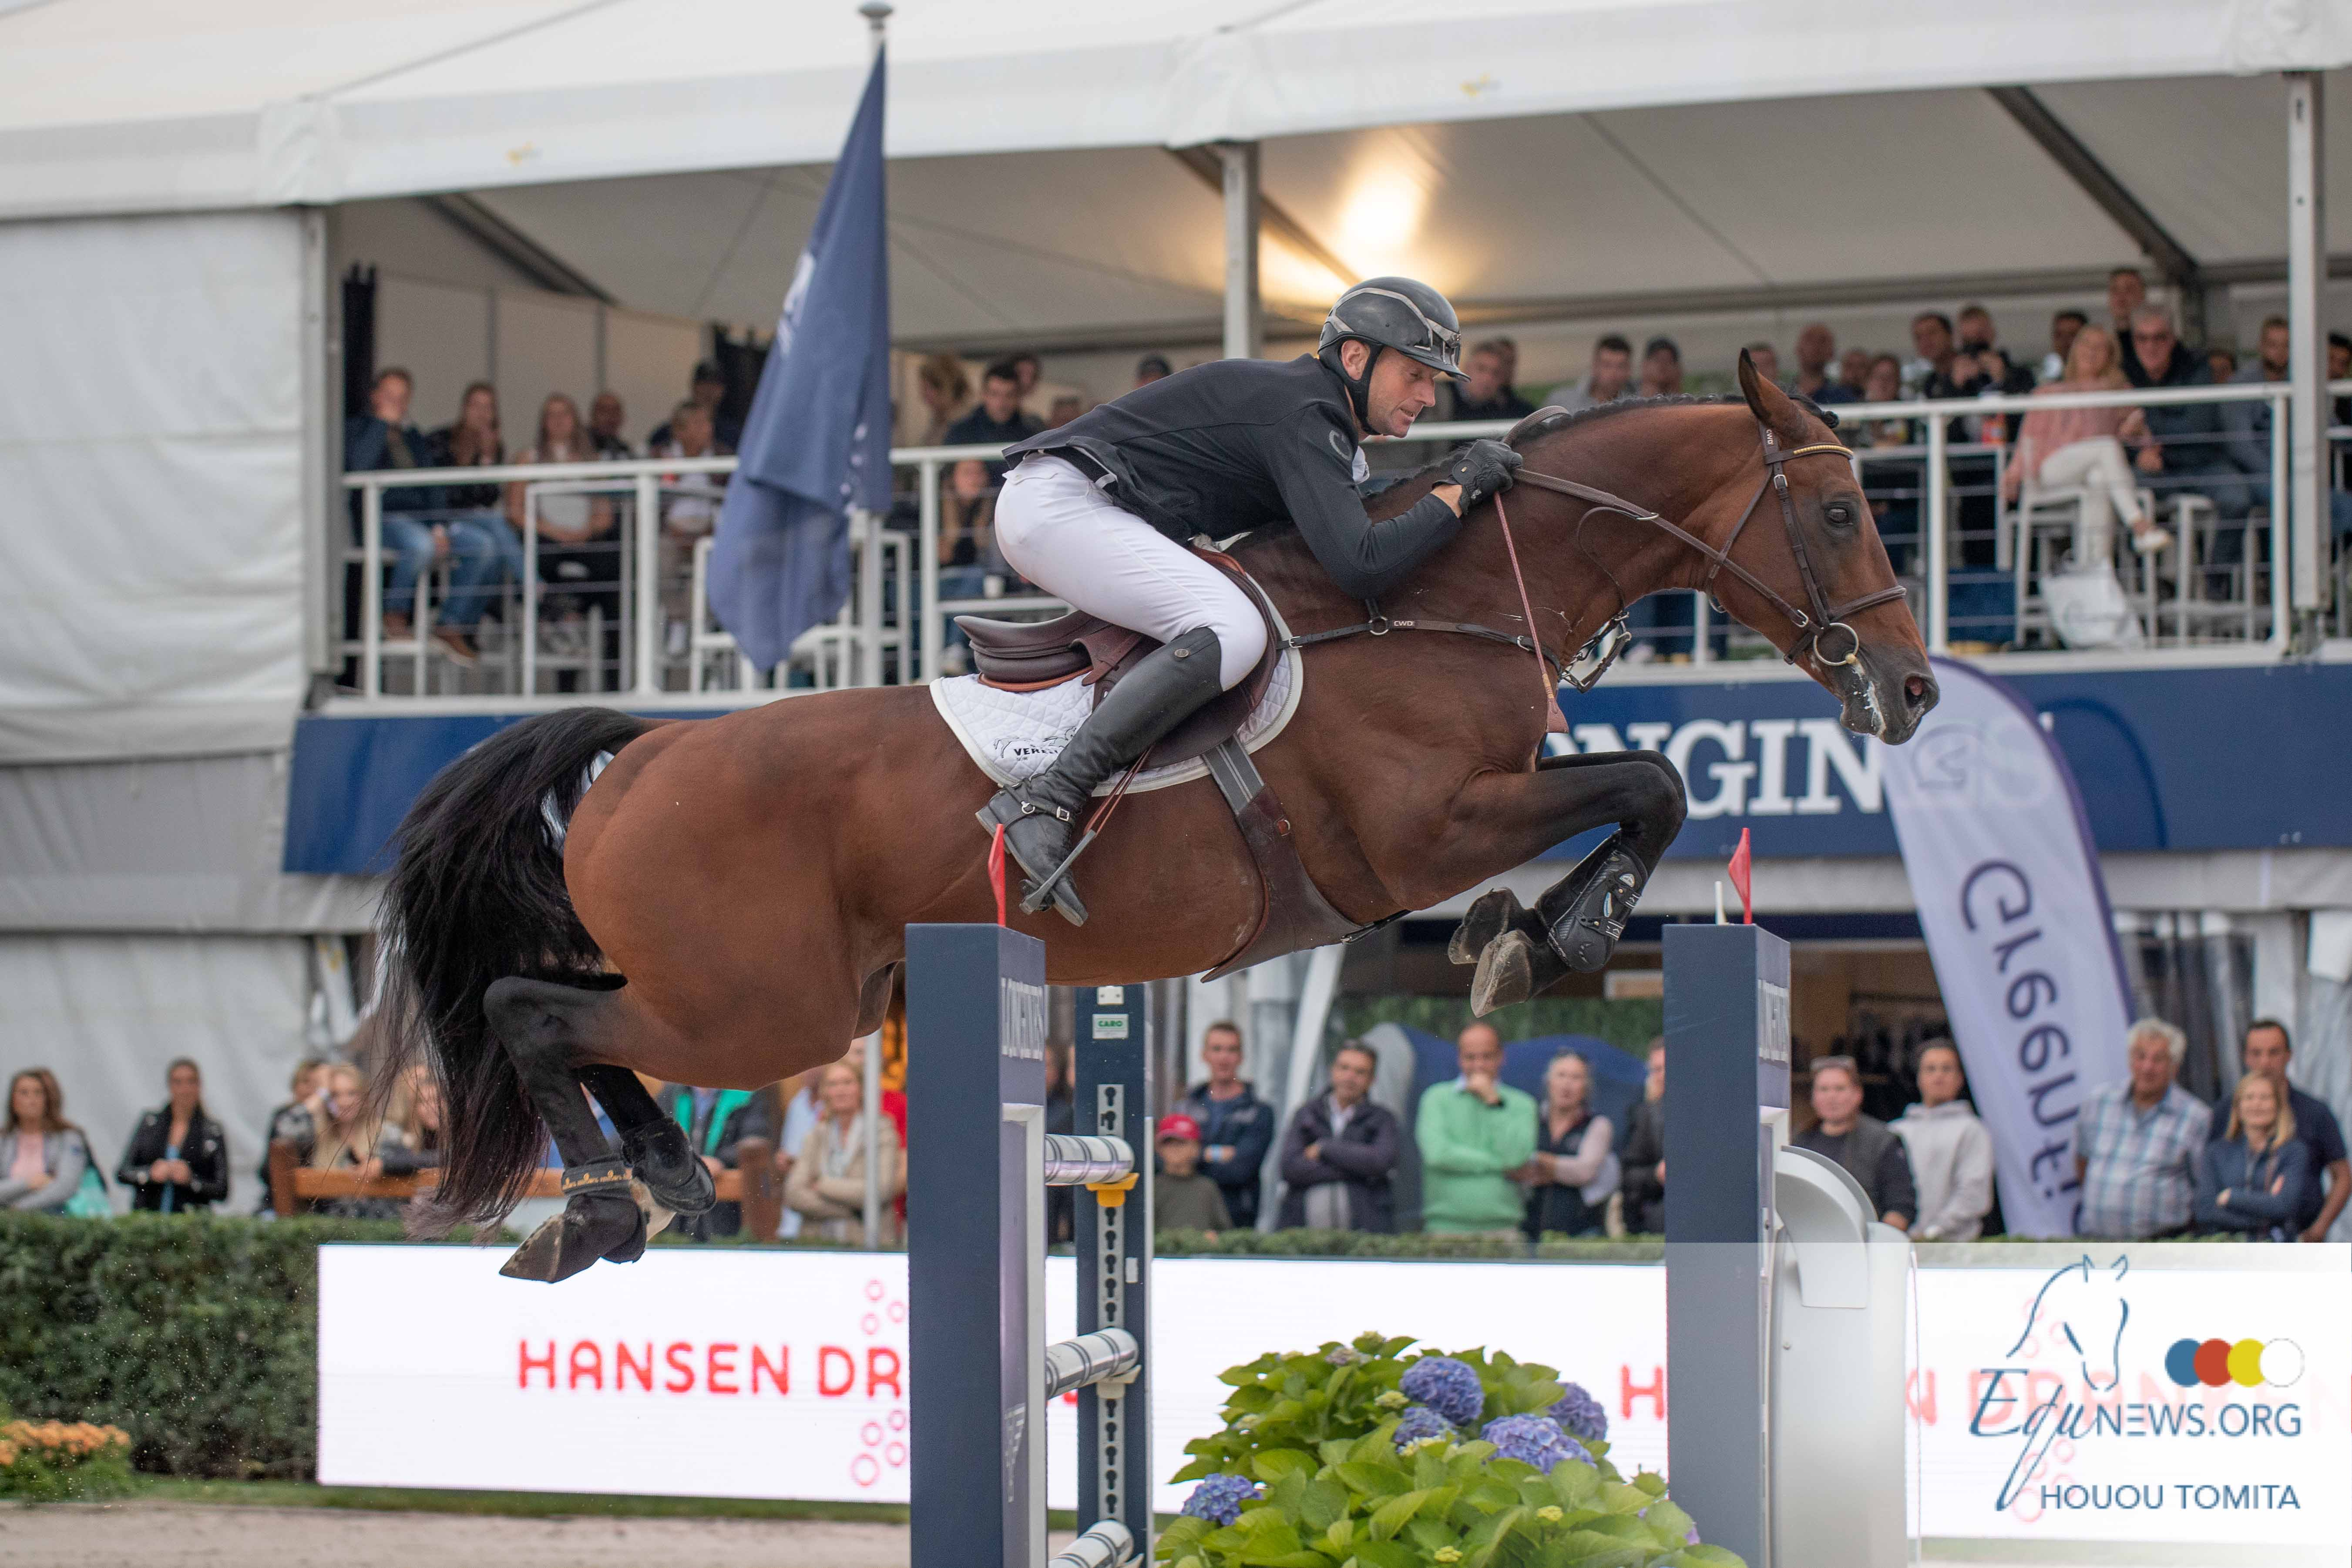 Koen Vereecke and Kasanova de la Pomme win Sires of the World after a great thriller!